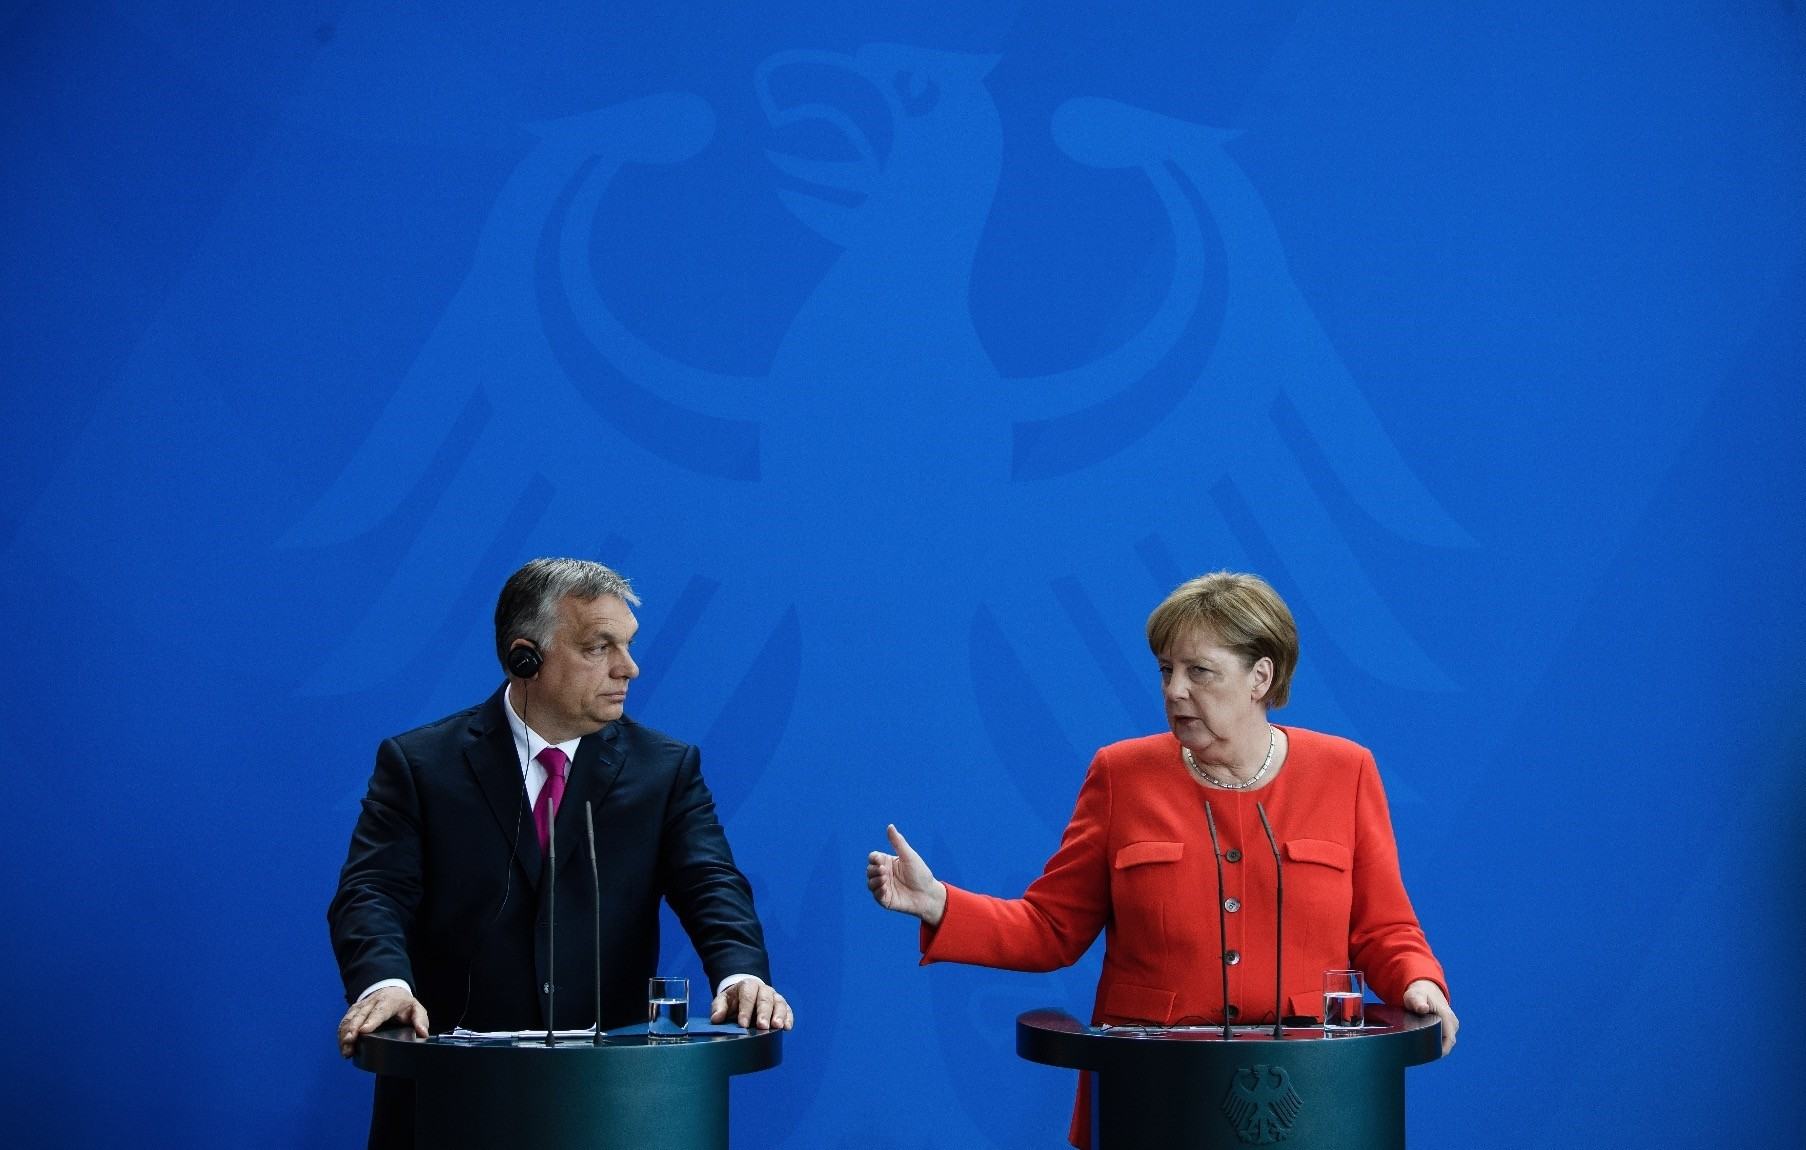 Prime Minister of Hungary Viktor Orban (L) and German Chancellor Angela Merkel (R) address a joint press conference at the Chancellery, Berlin, July 5.